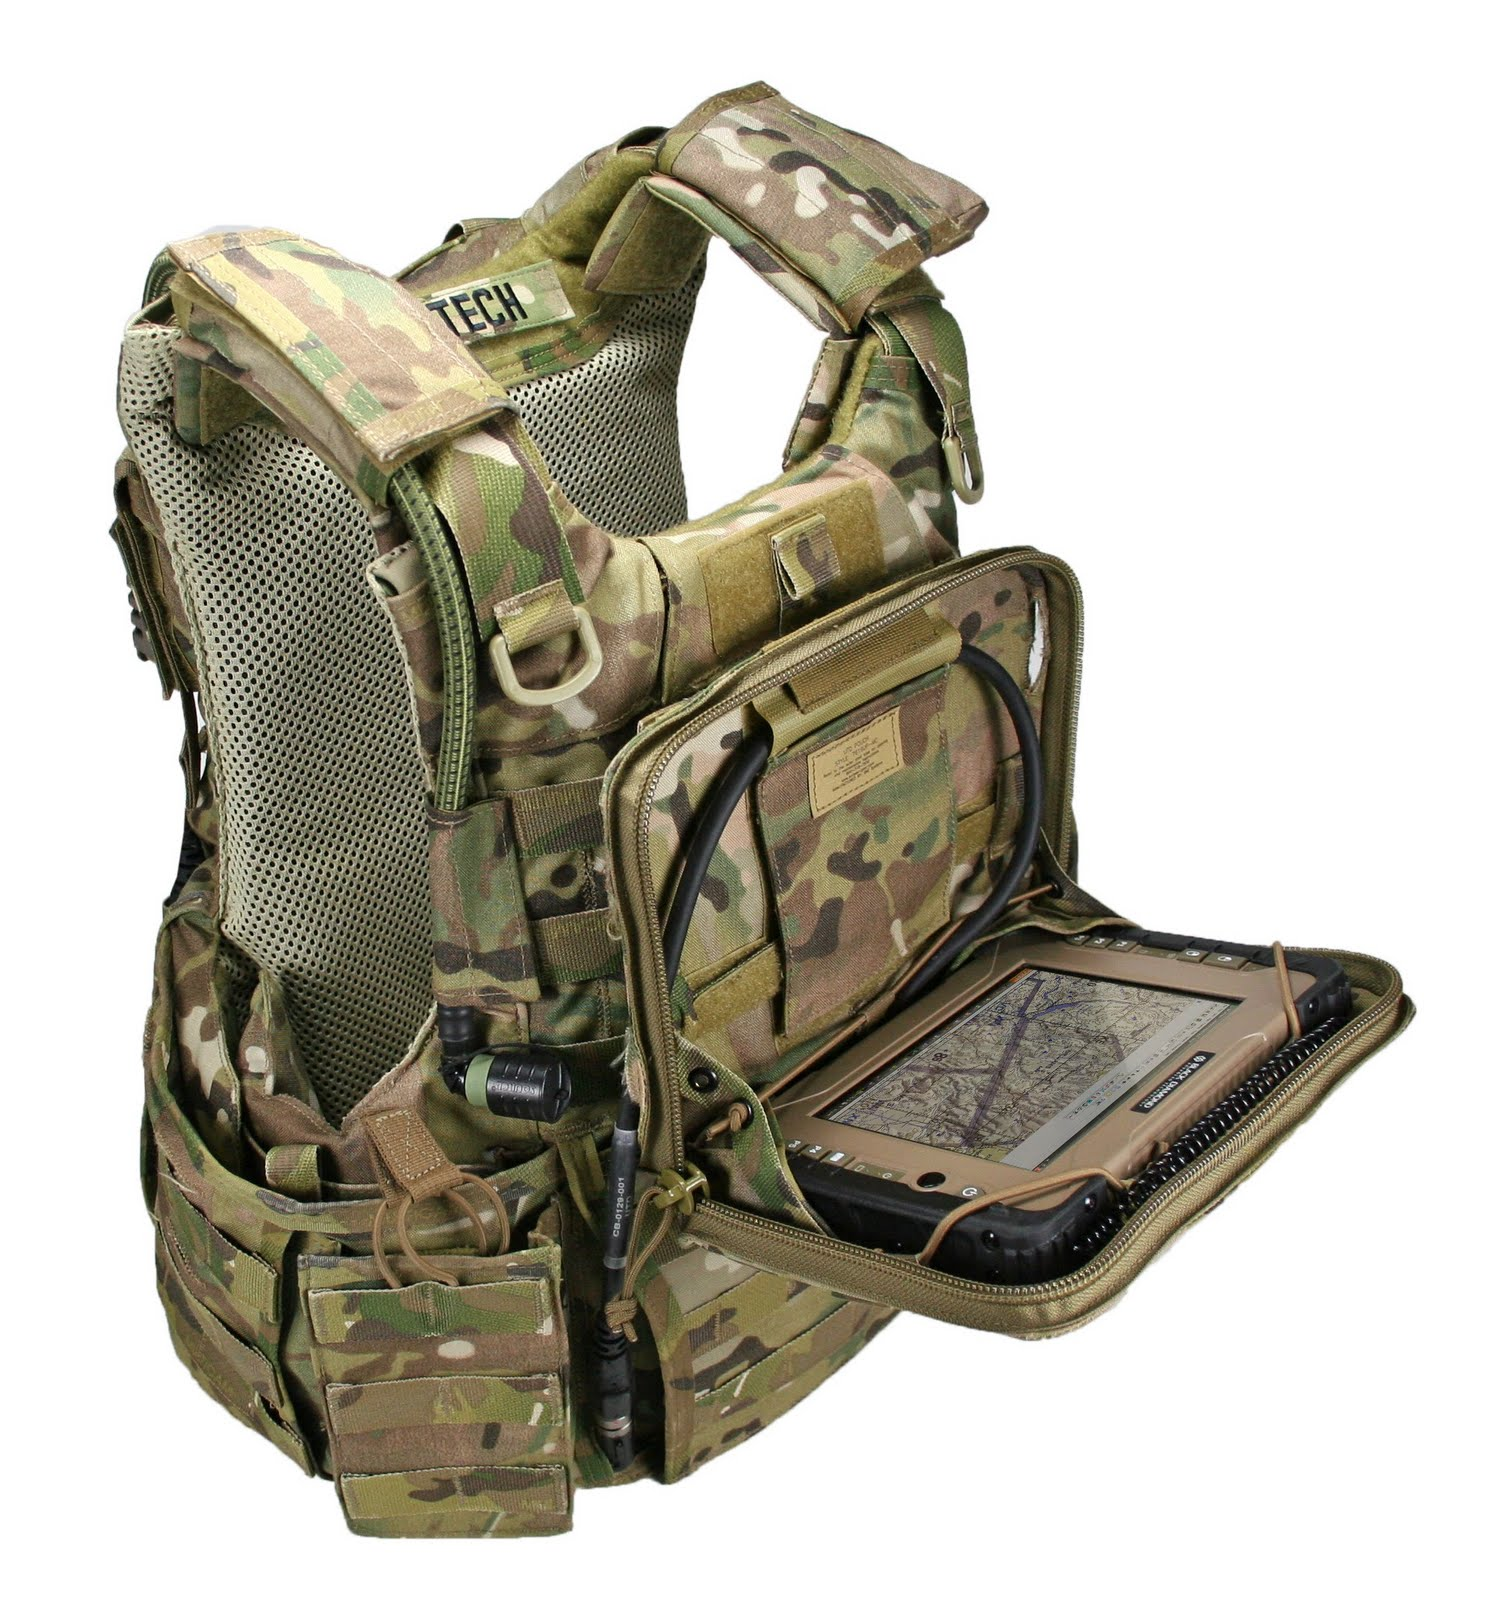 World military : Military Tactical Gear